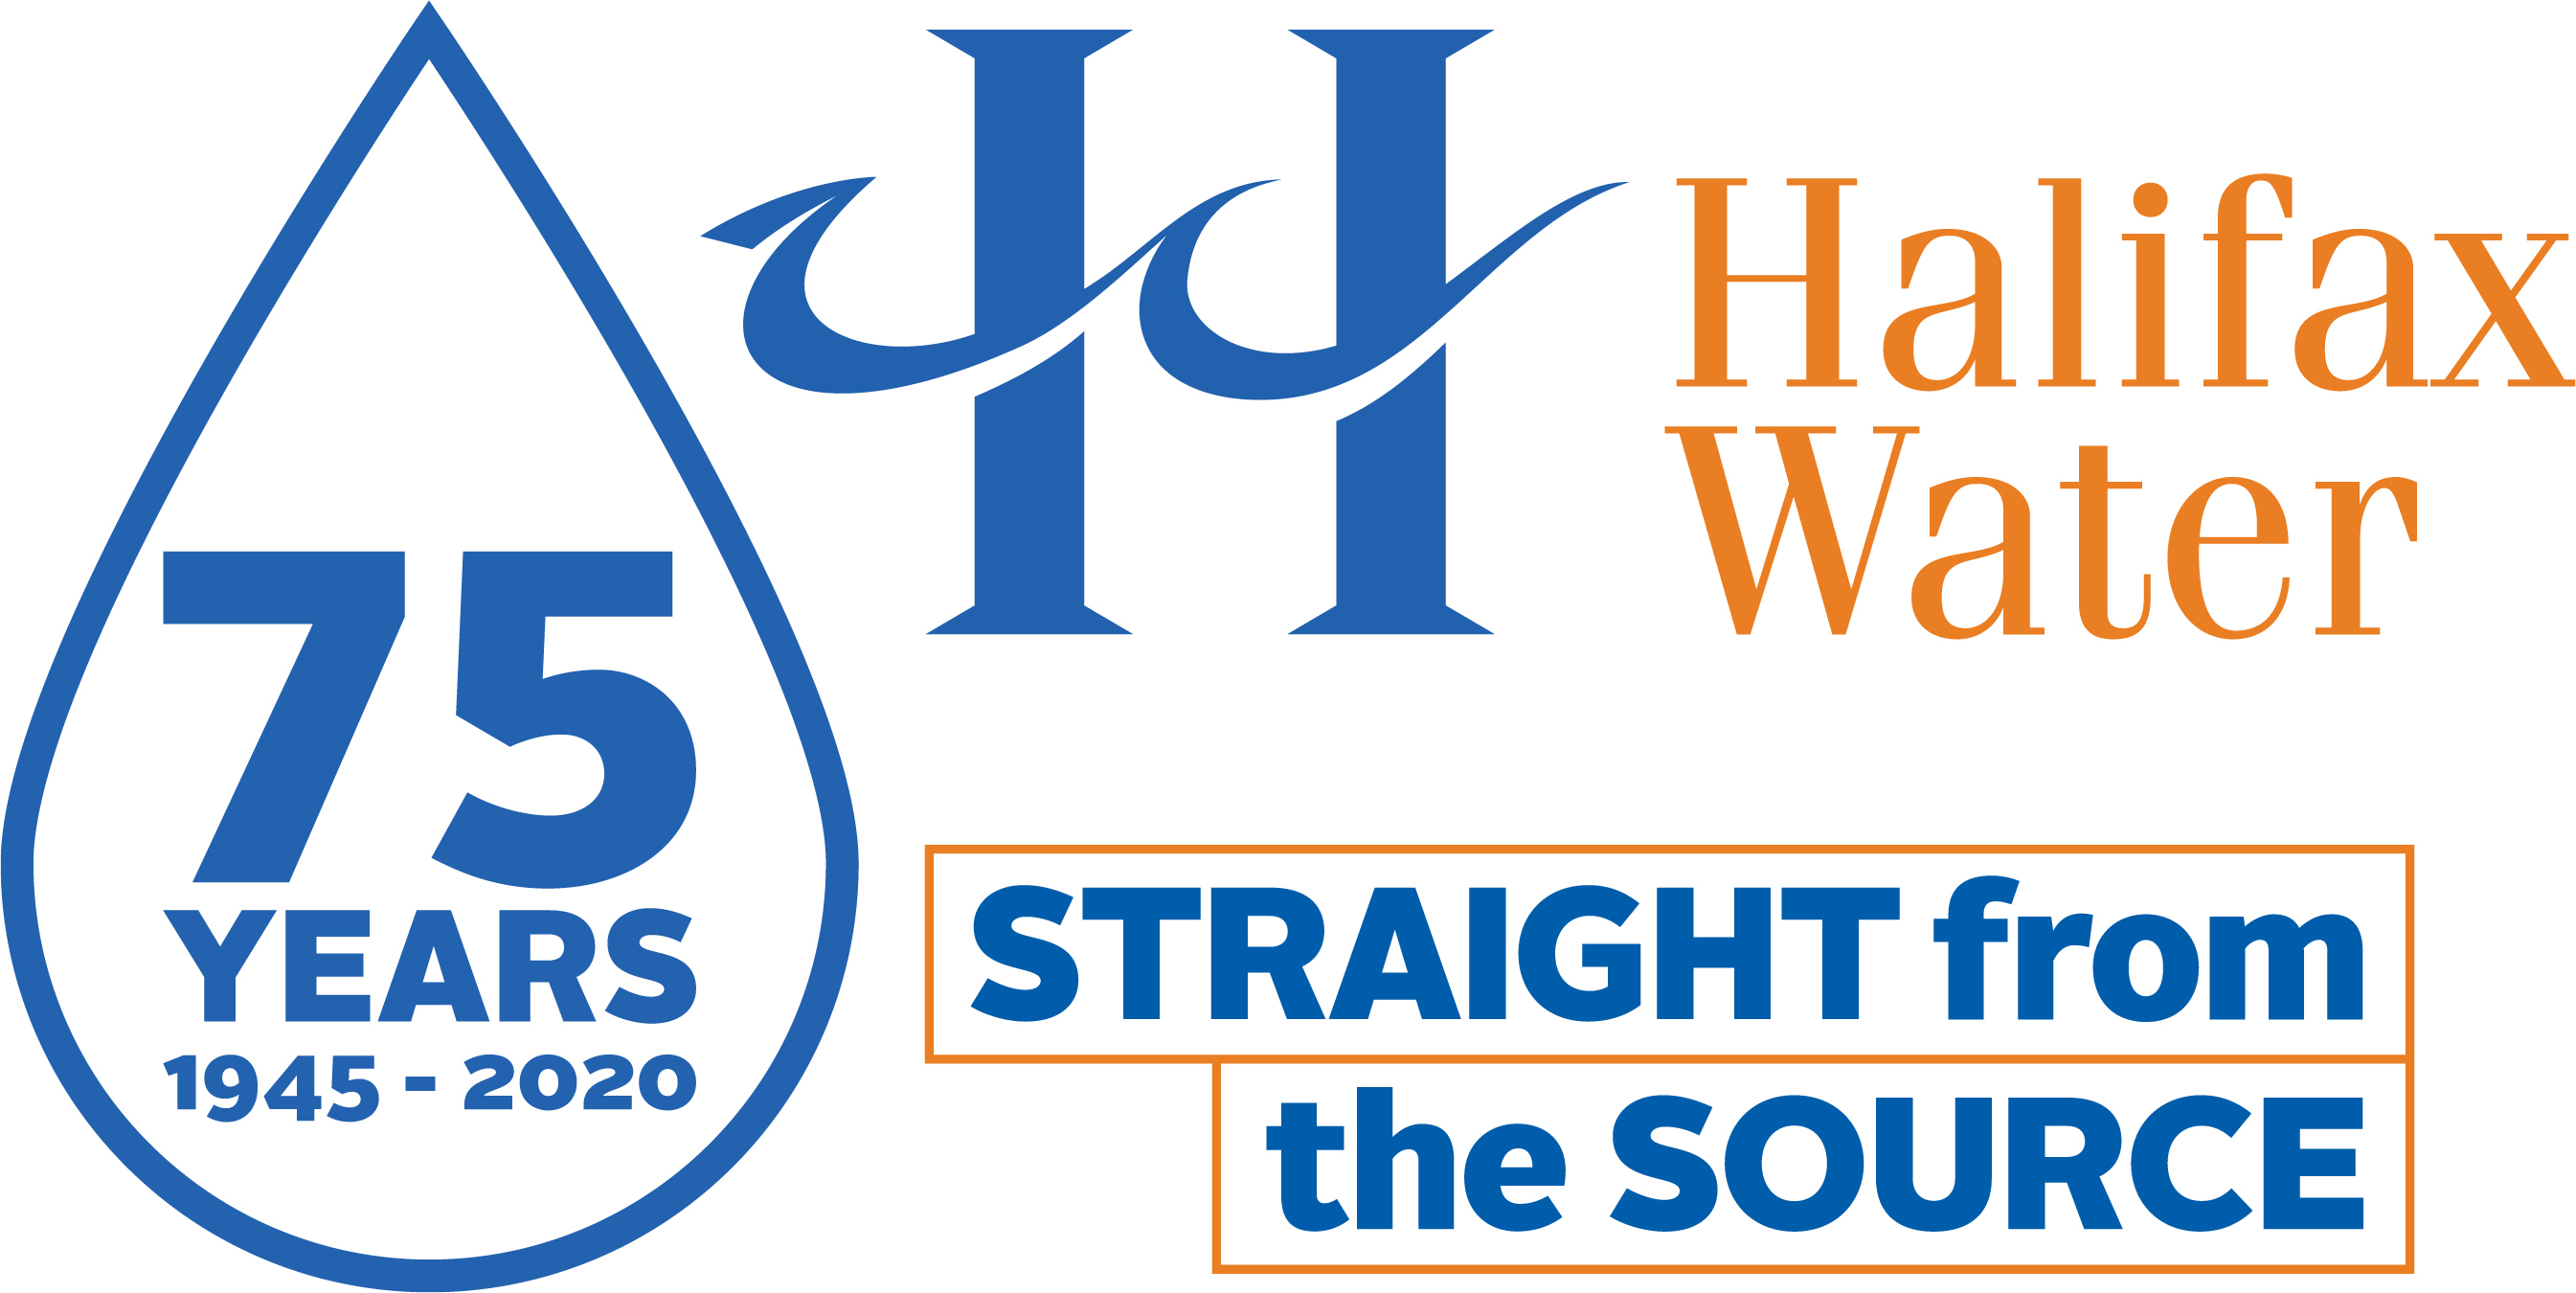 Halifax Water's Logo